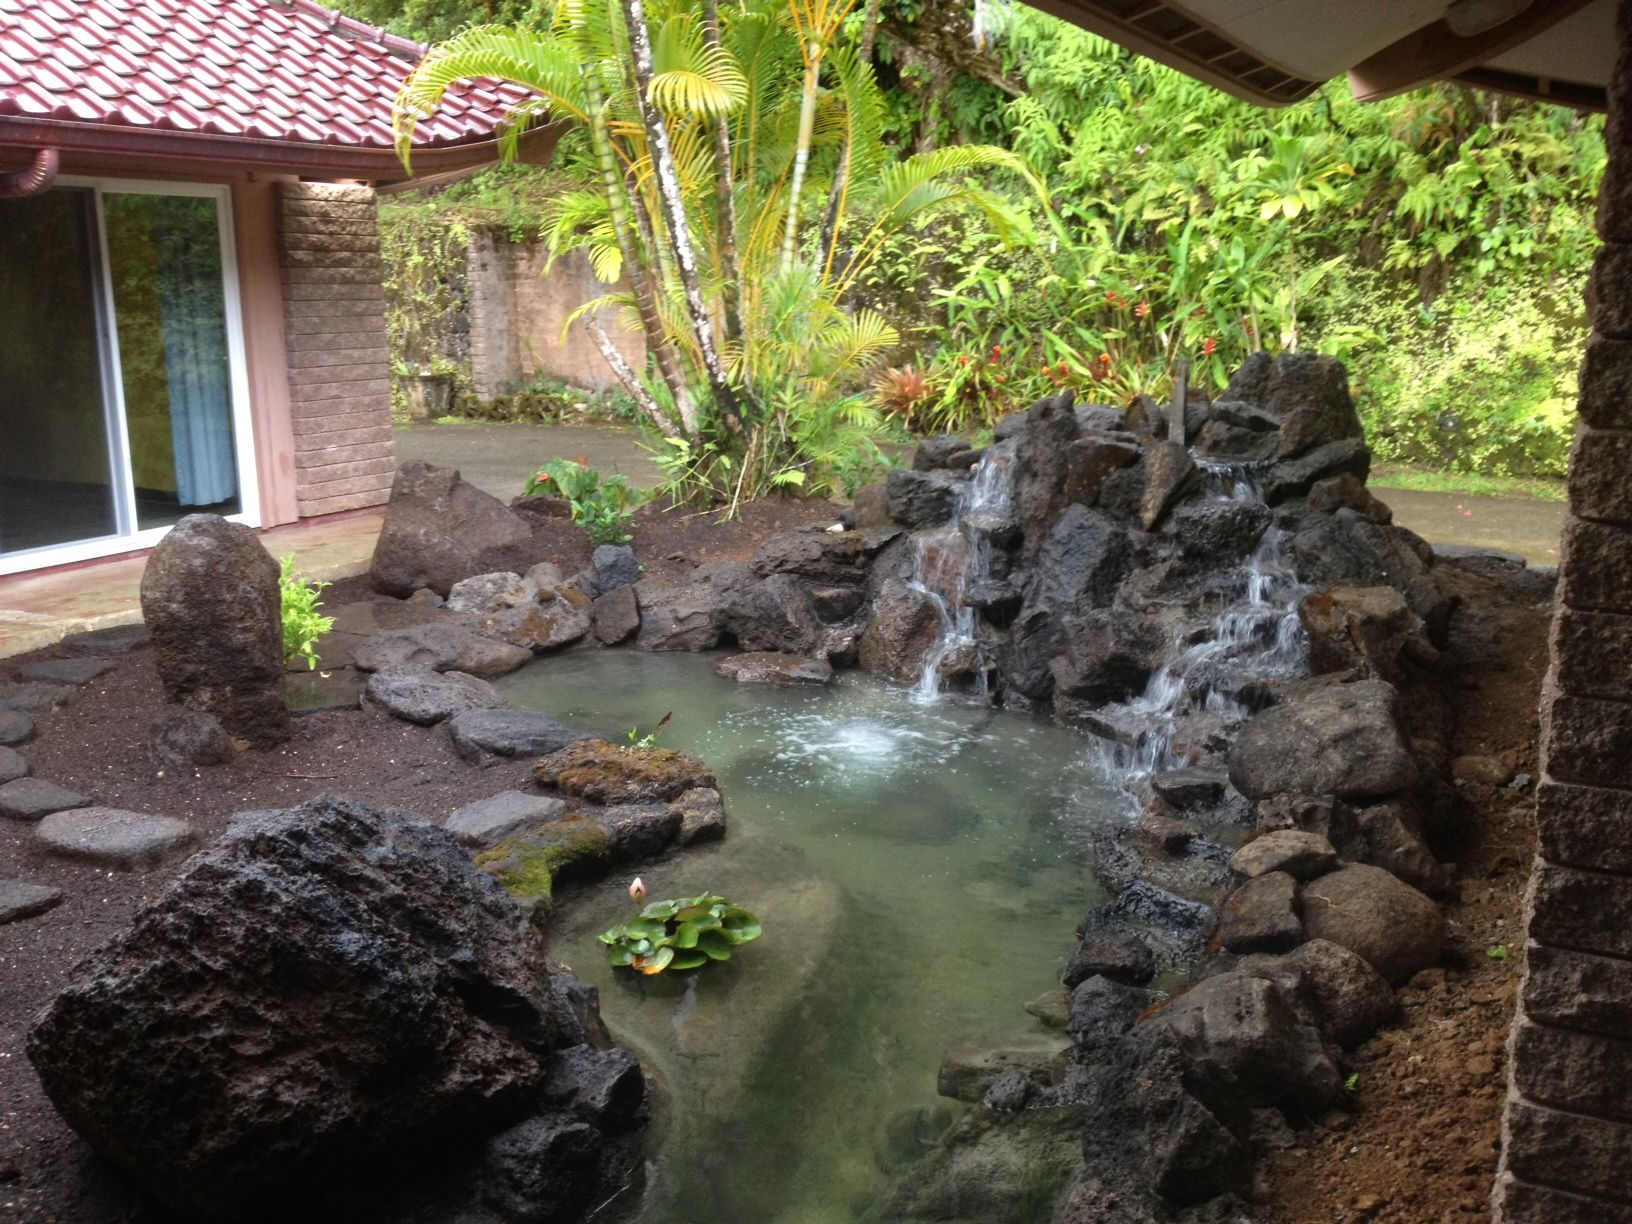 The Pond Digger builds in Hawaii Koi ponds Ponds